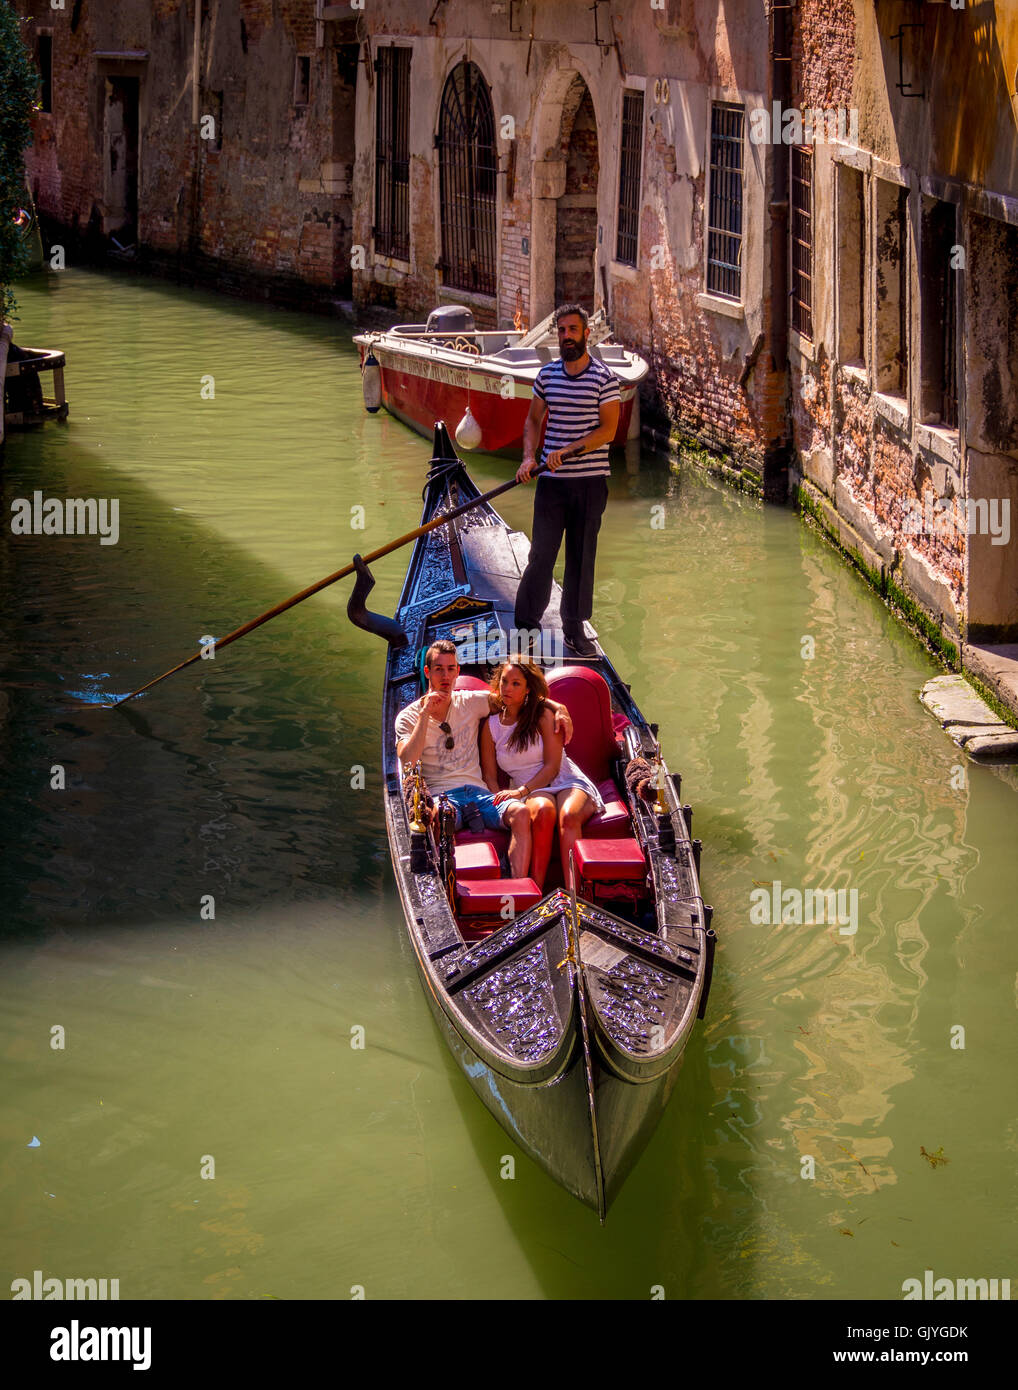 Gondolier wearing traditional striped top steering his gondola along a narrow canal in Venice, Italy. - Stock Image